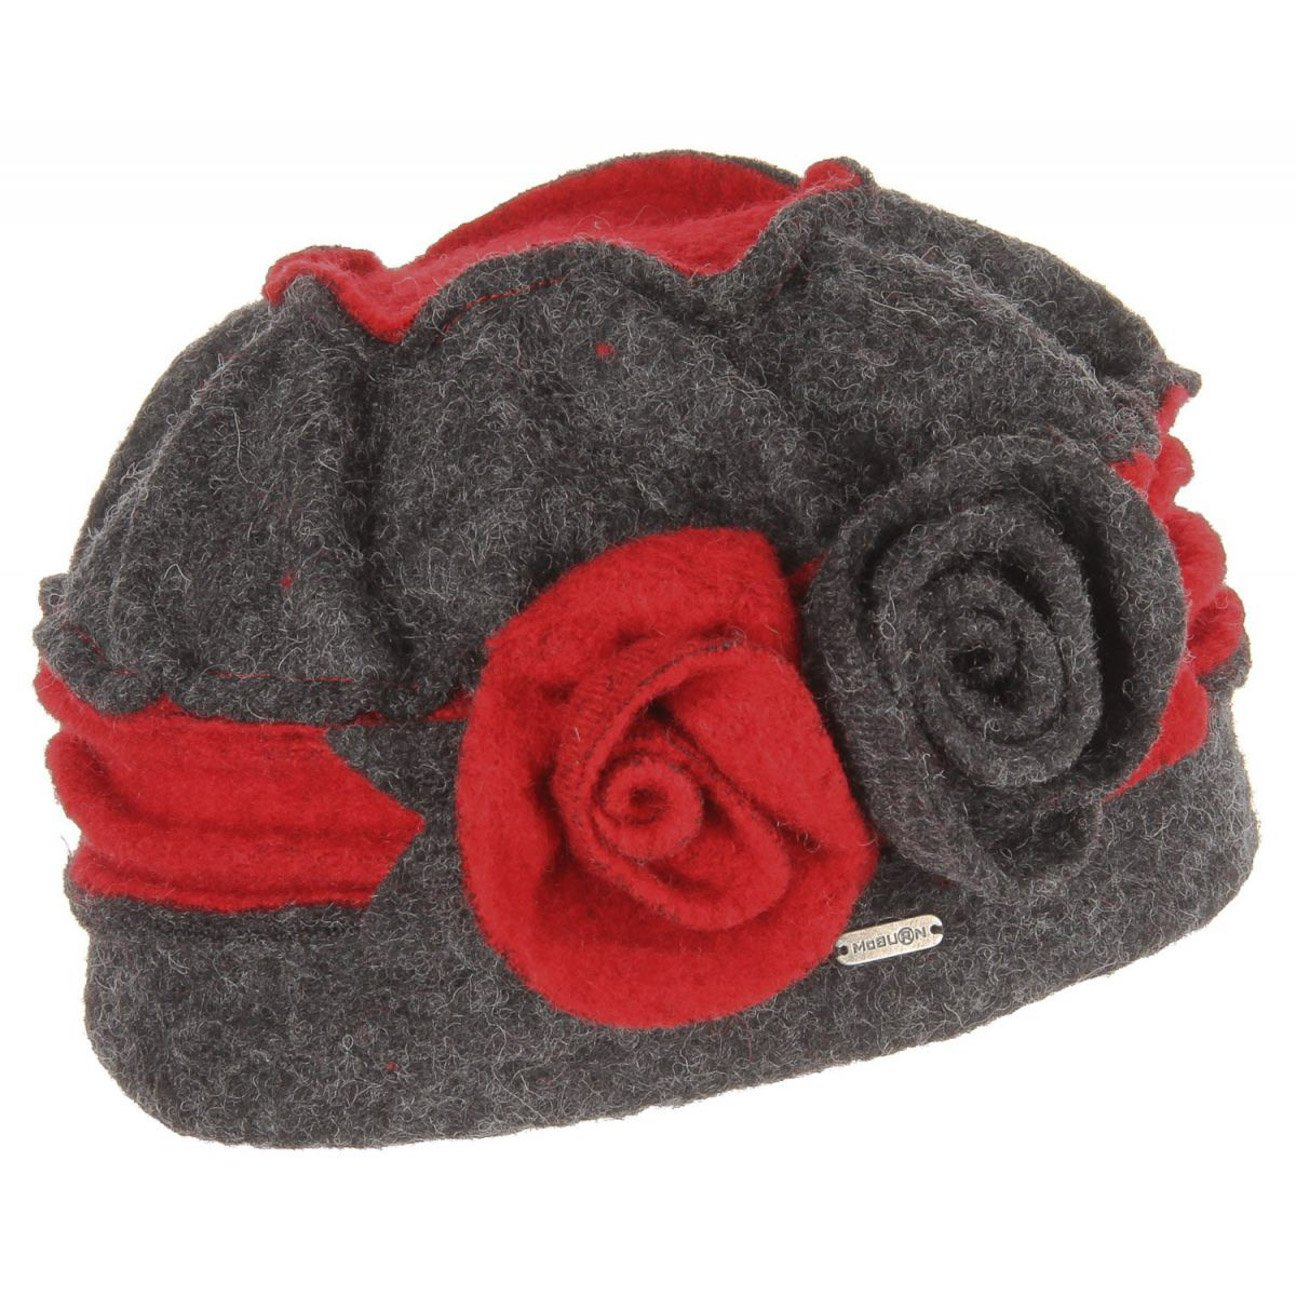 Nicandra Milled Wool Hat McBURN hat for women winter hats